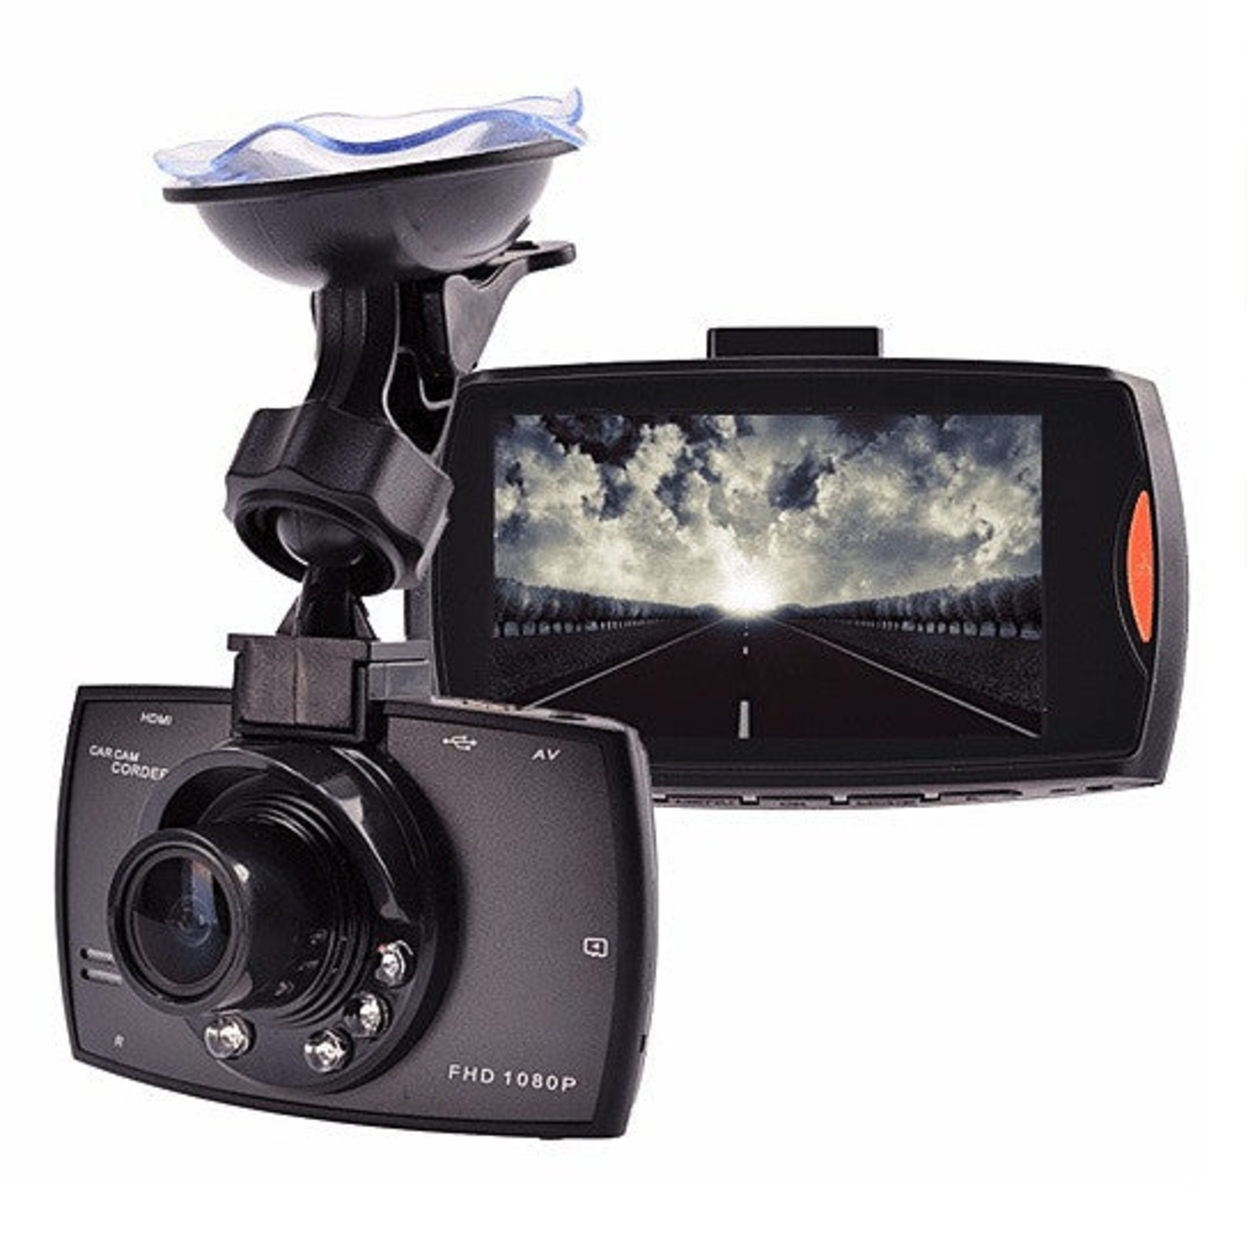 SafetyFirst HD 1080p Car Dash CamCorder with Night Vision 58a8d97578a3c956da052623